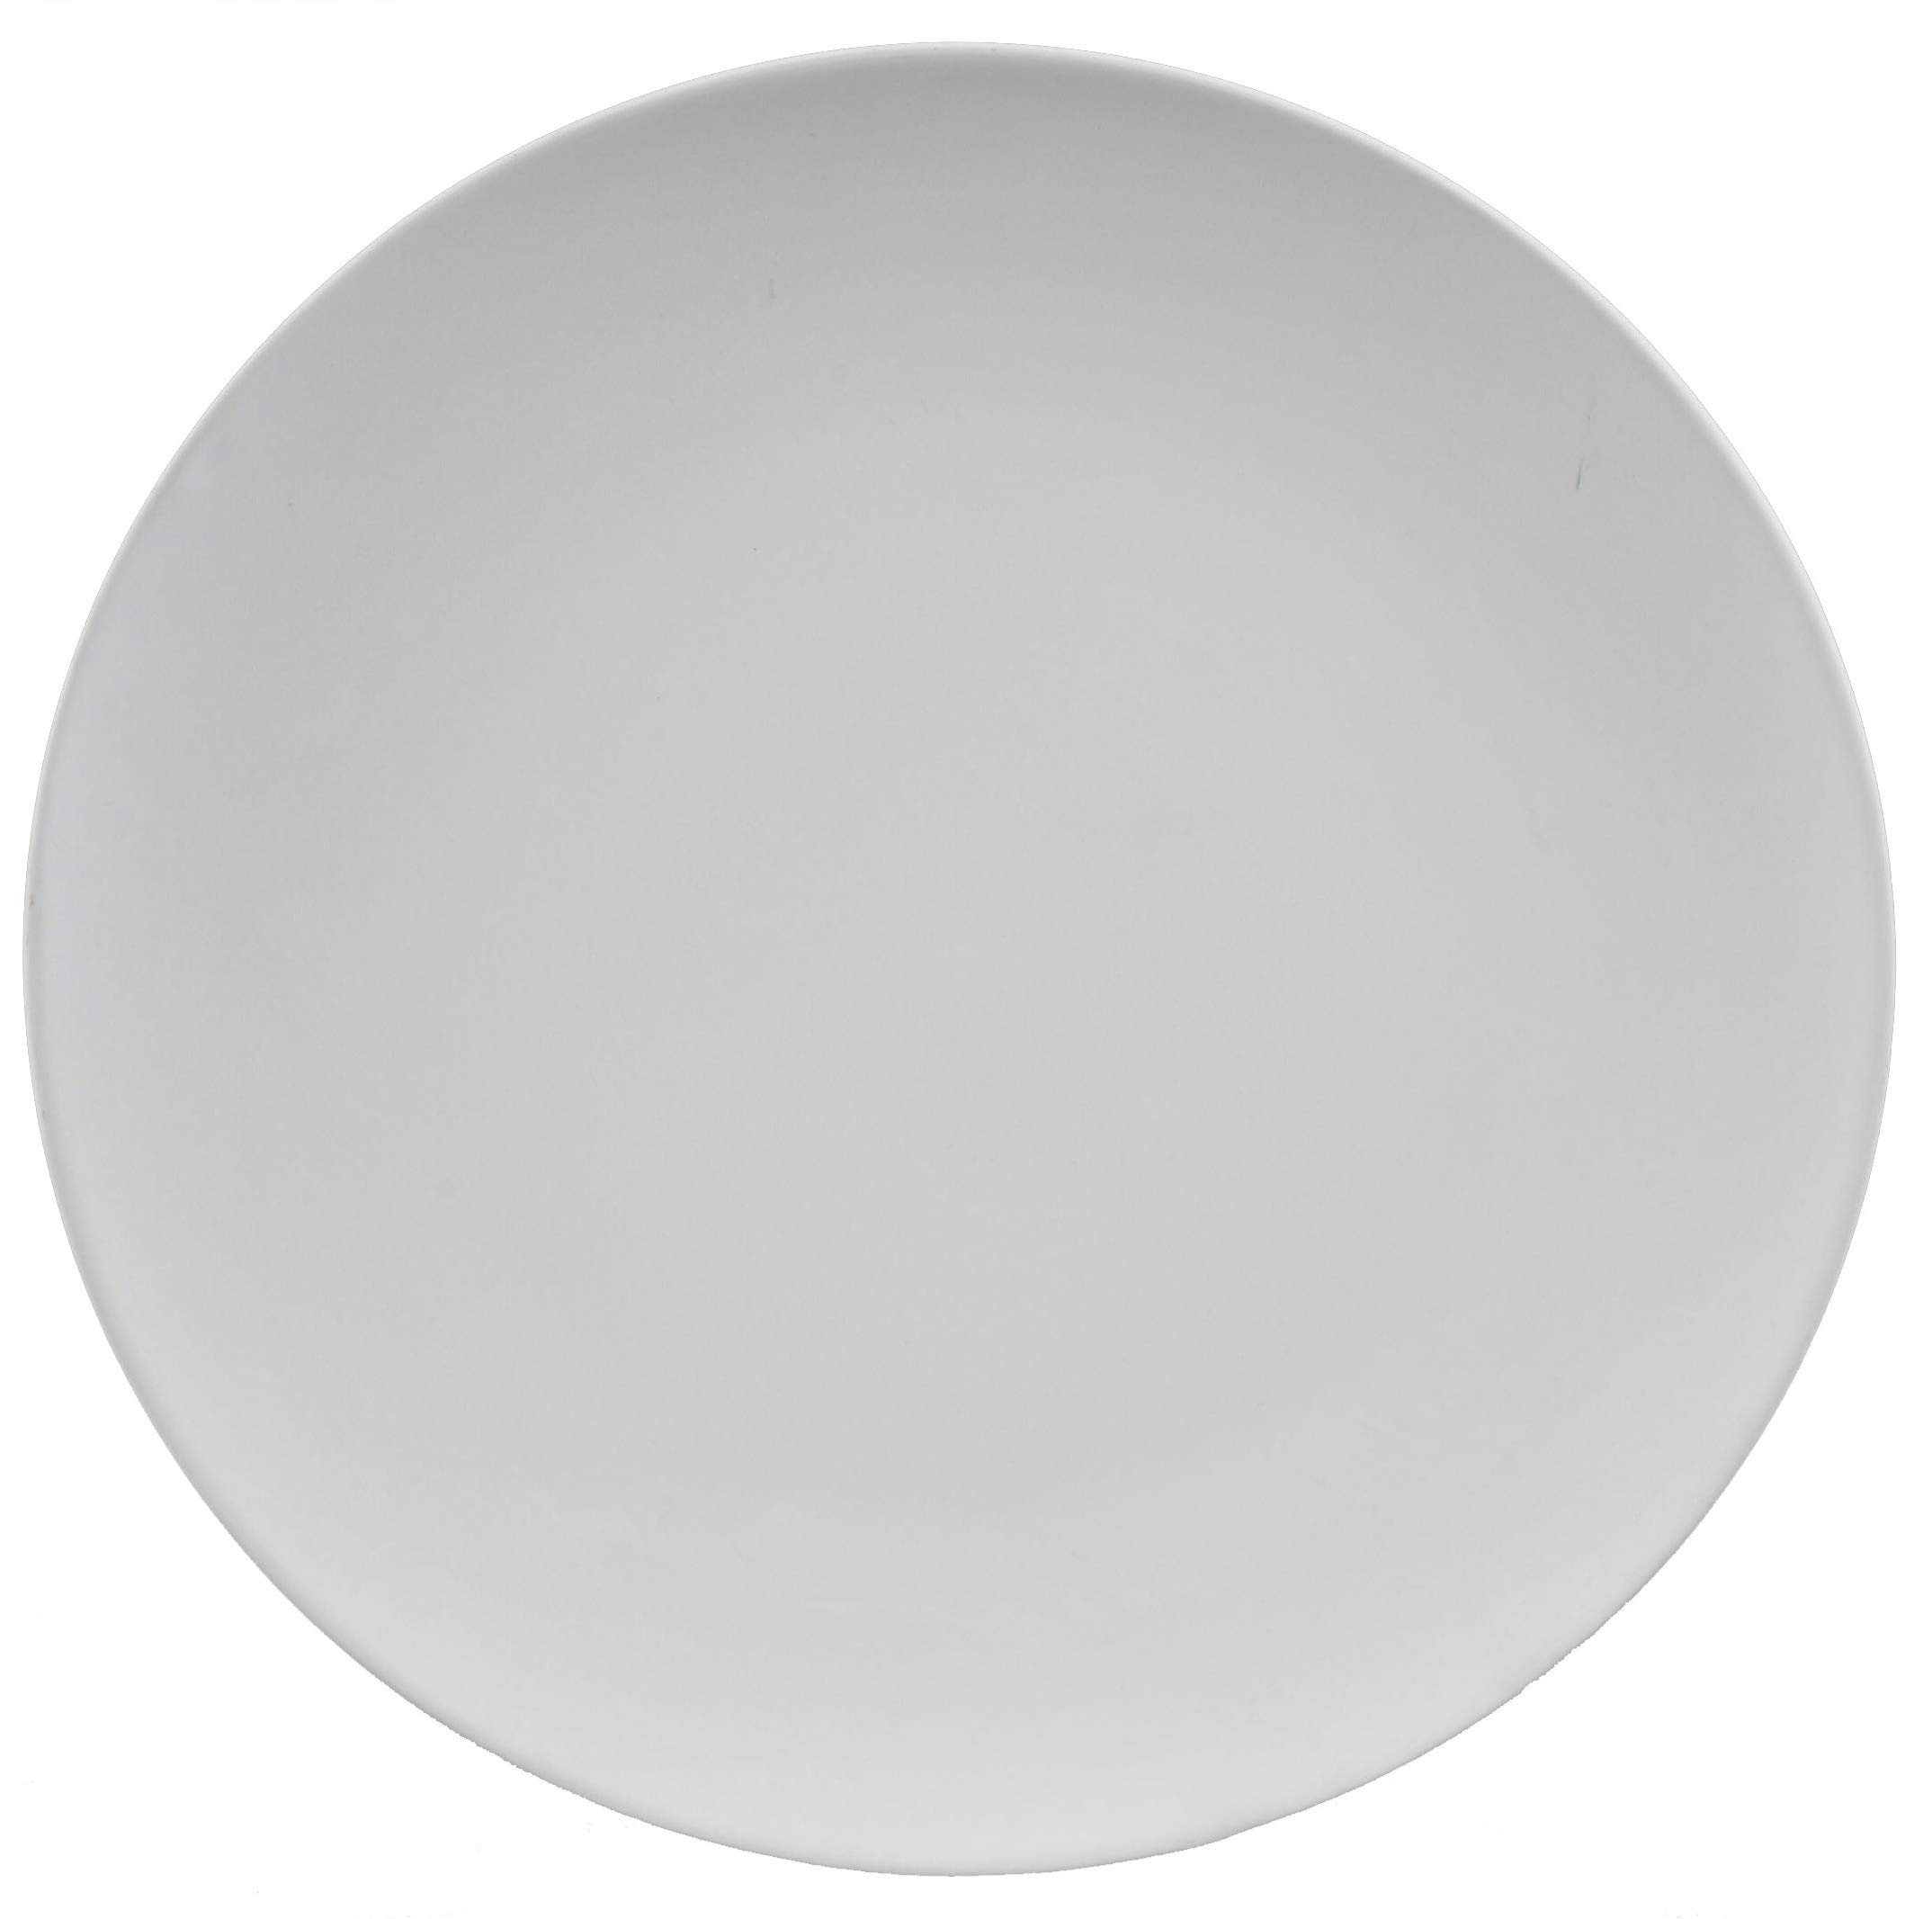 Creative Hobbies 8 Inch Coupe Salad Plates, Case of 12, Unfinished Ceramic Bisque, with How to Paint Your Own Pottery Booklet